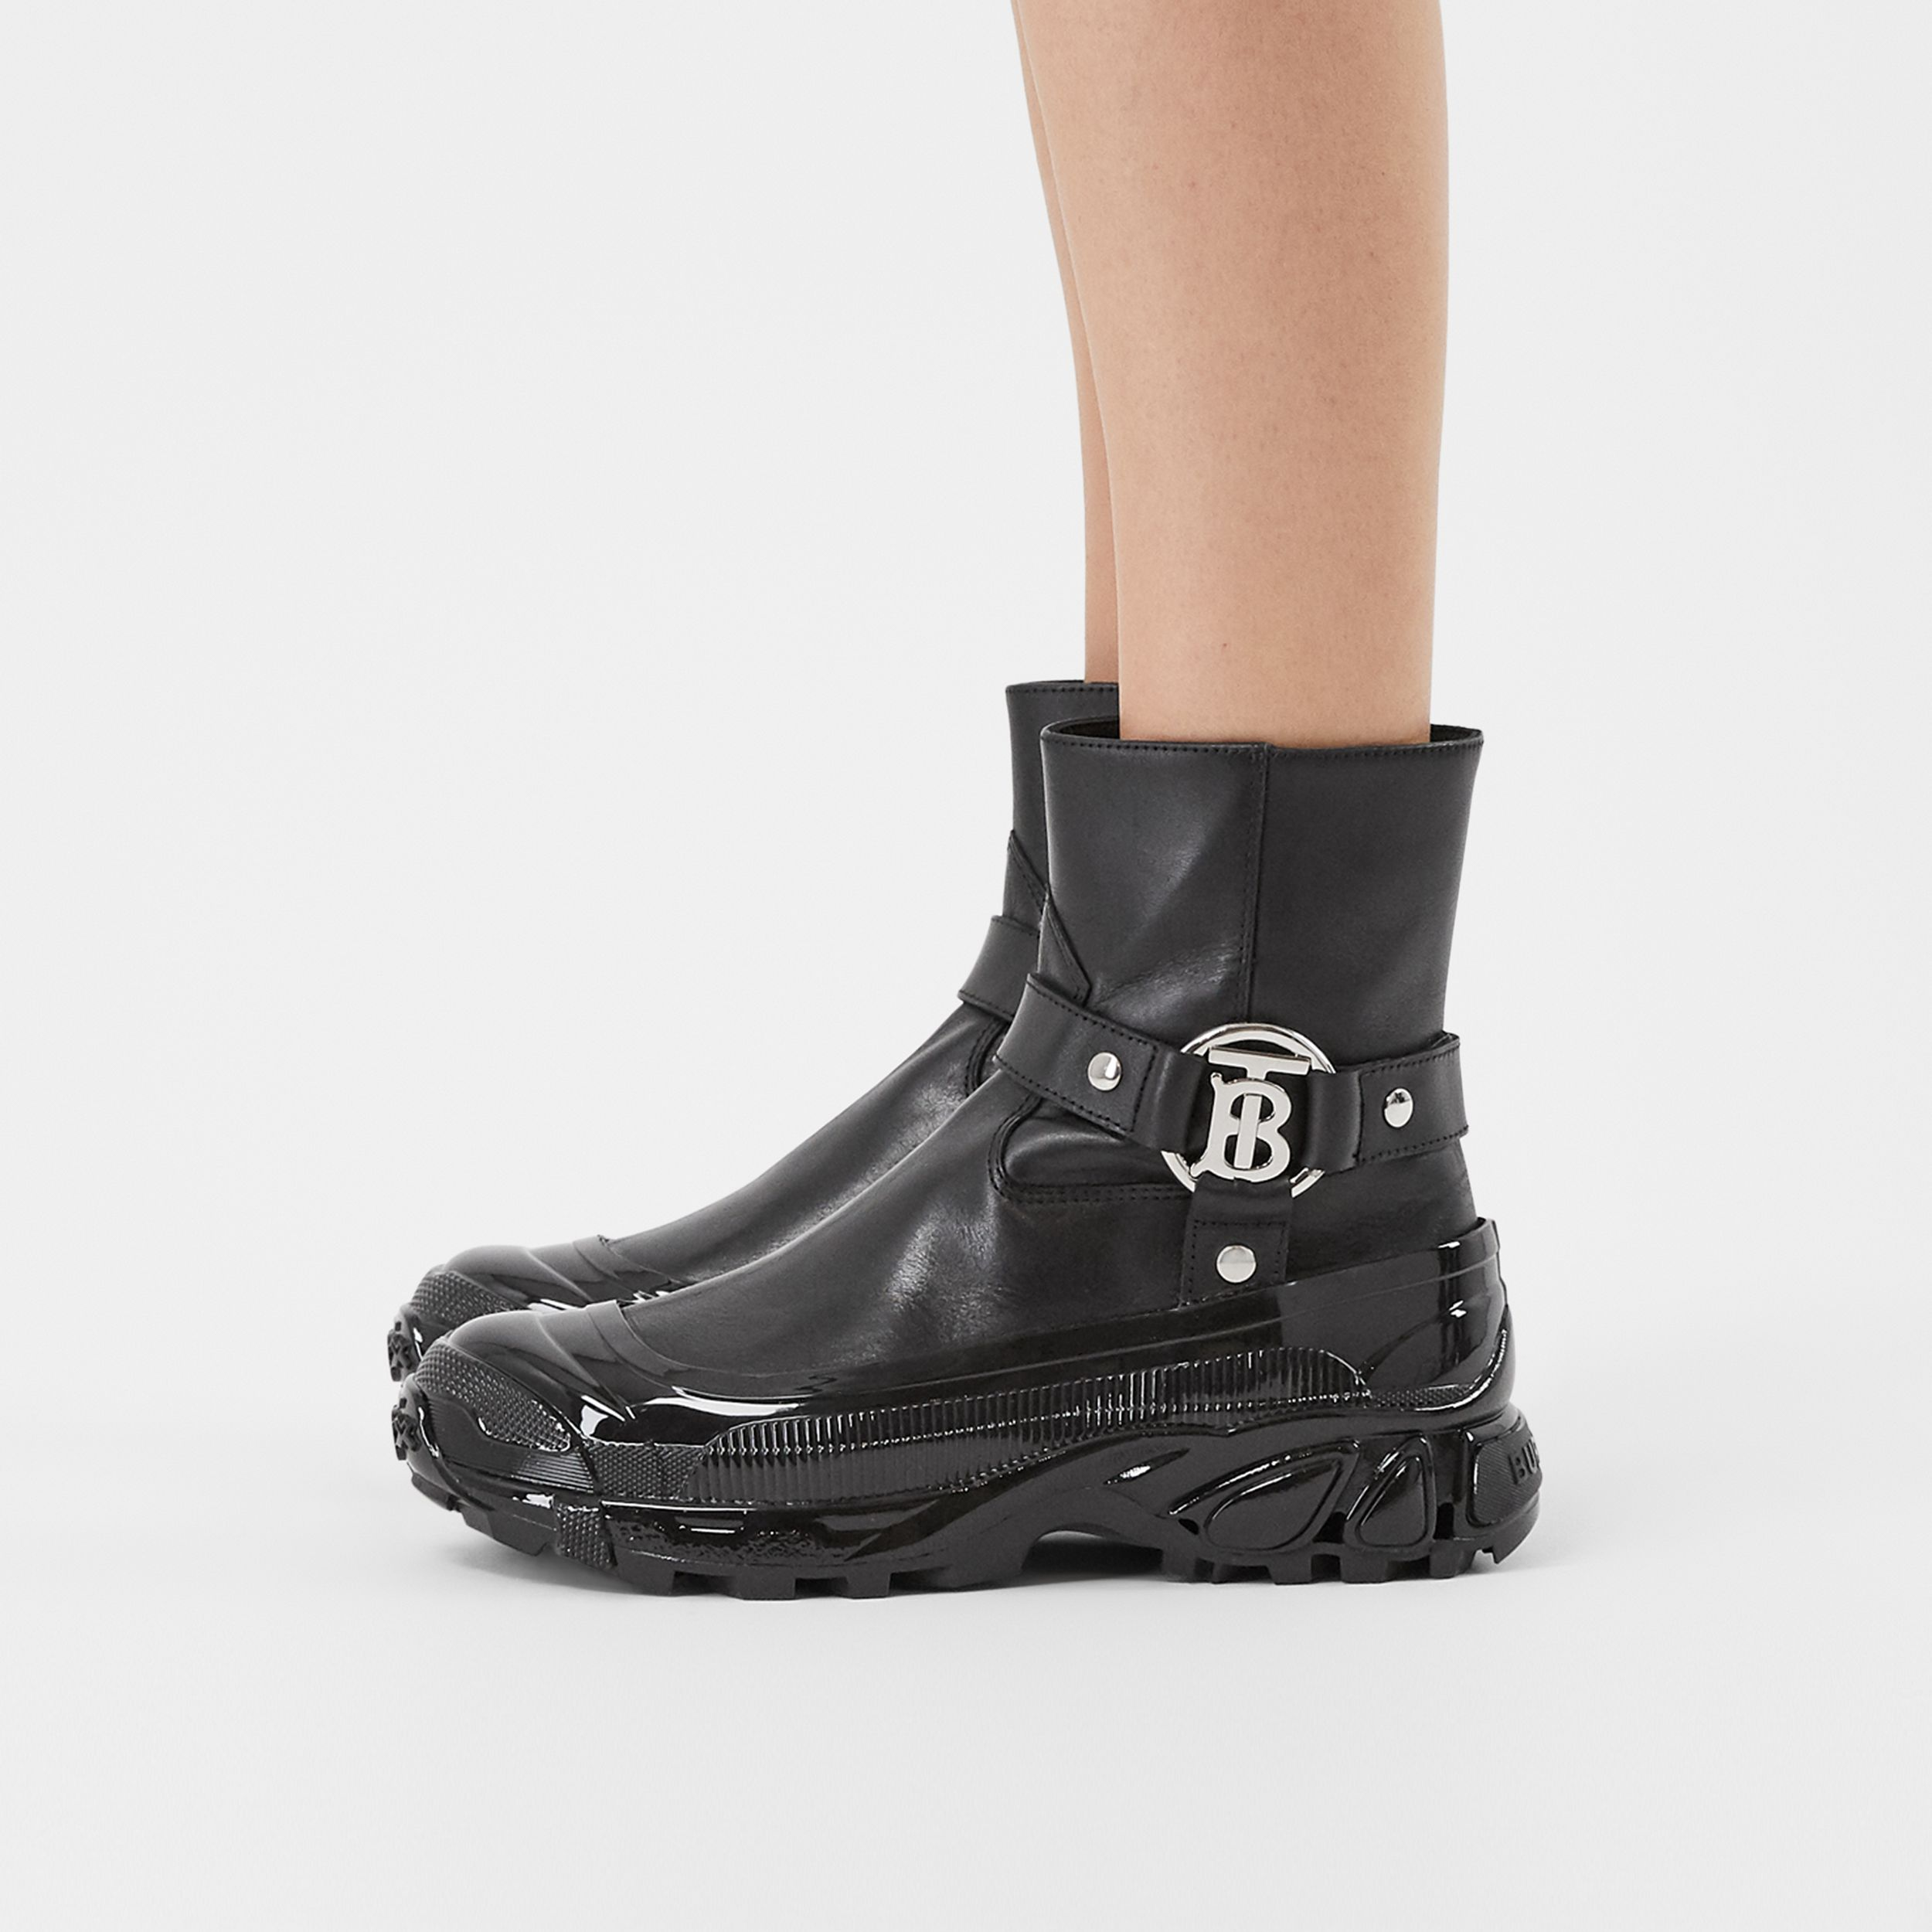 Monogram Motif Buckle Leather Boots in Black - Women | Burberry - 3